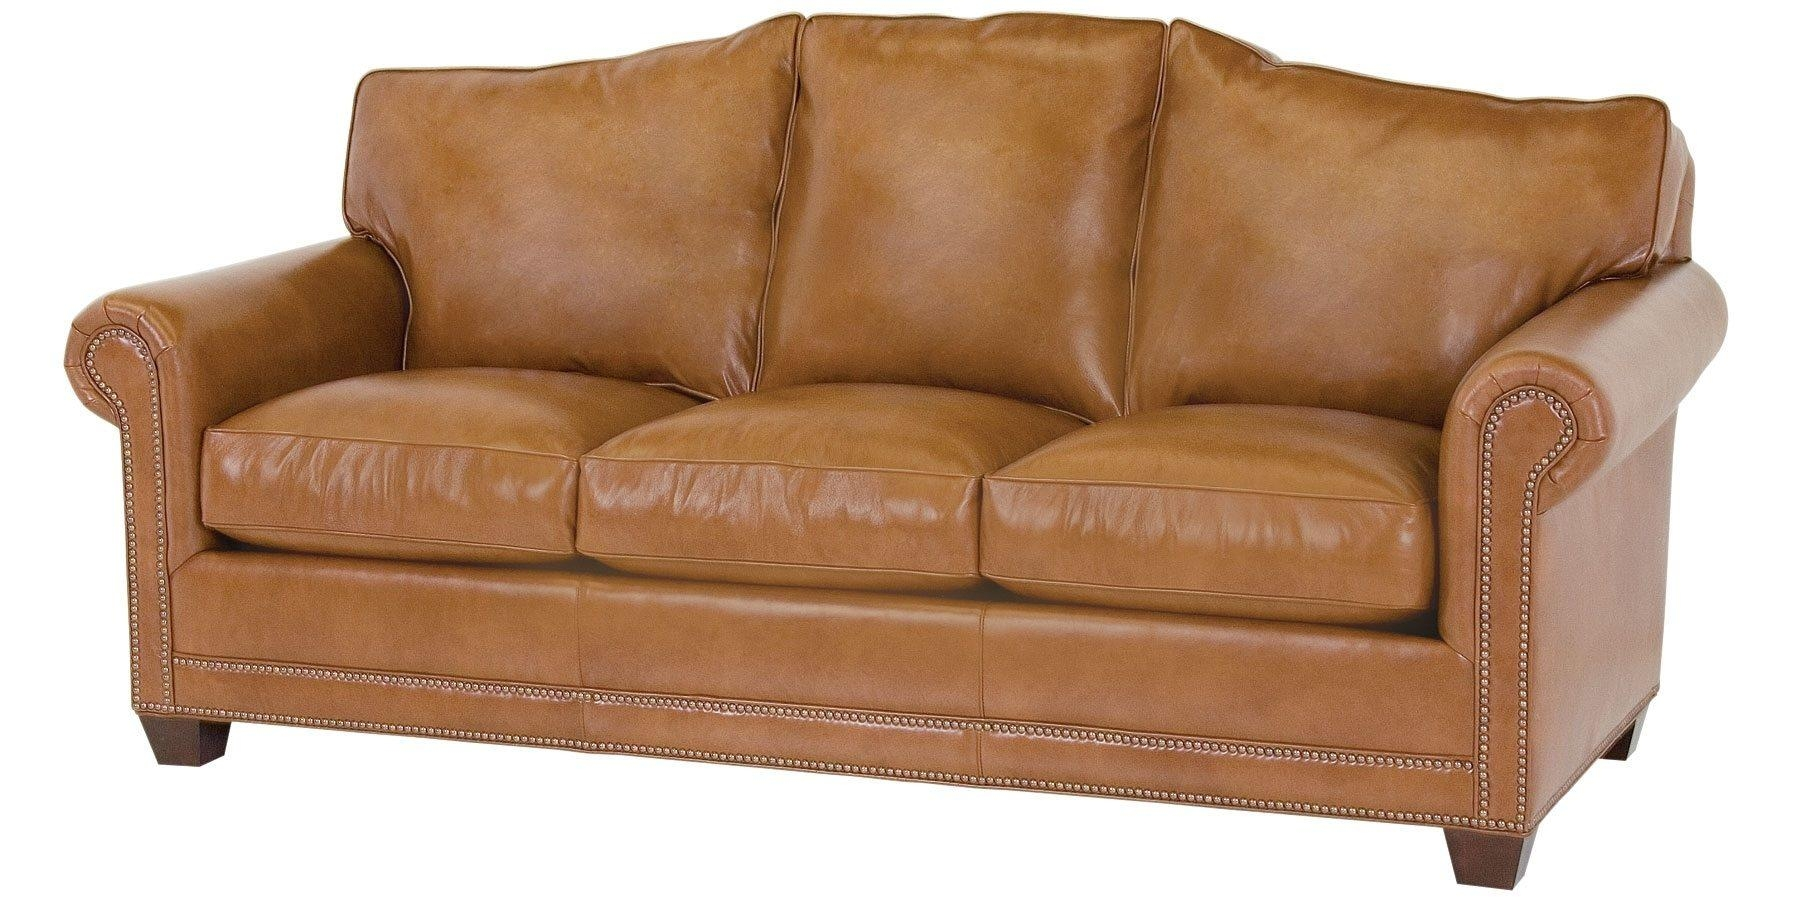 Sofas Center : Best Leather Couches Ideas On Pinterest Camel With Camel Color Sofas (Image 16 of 20)